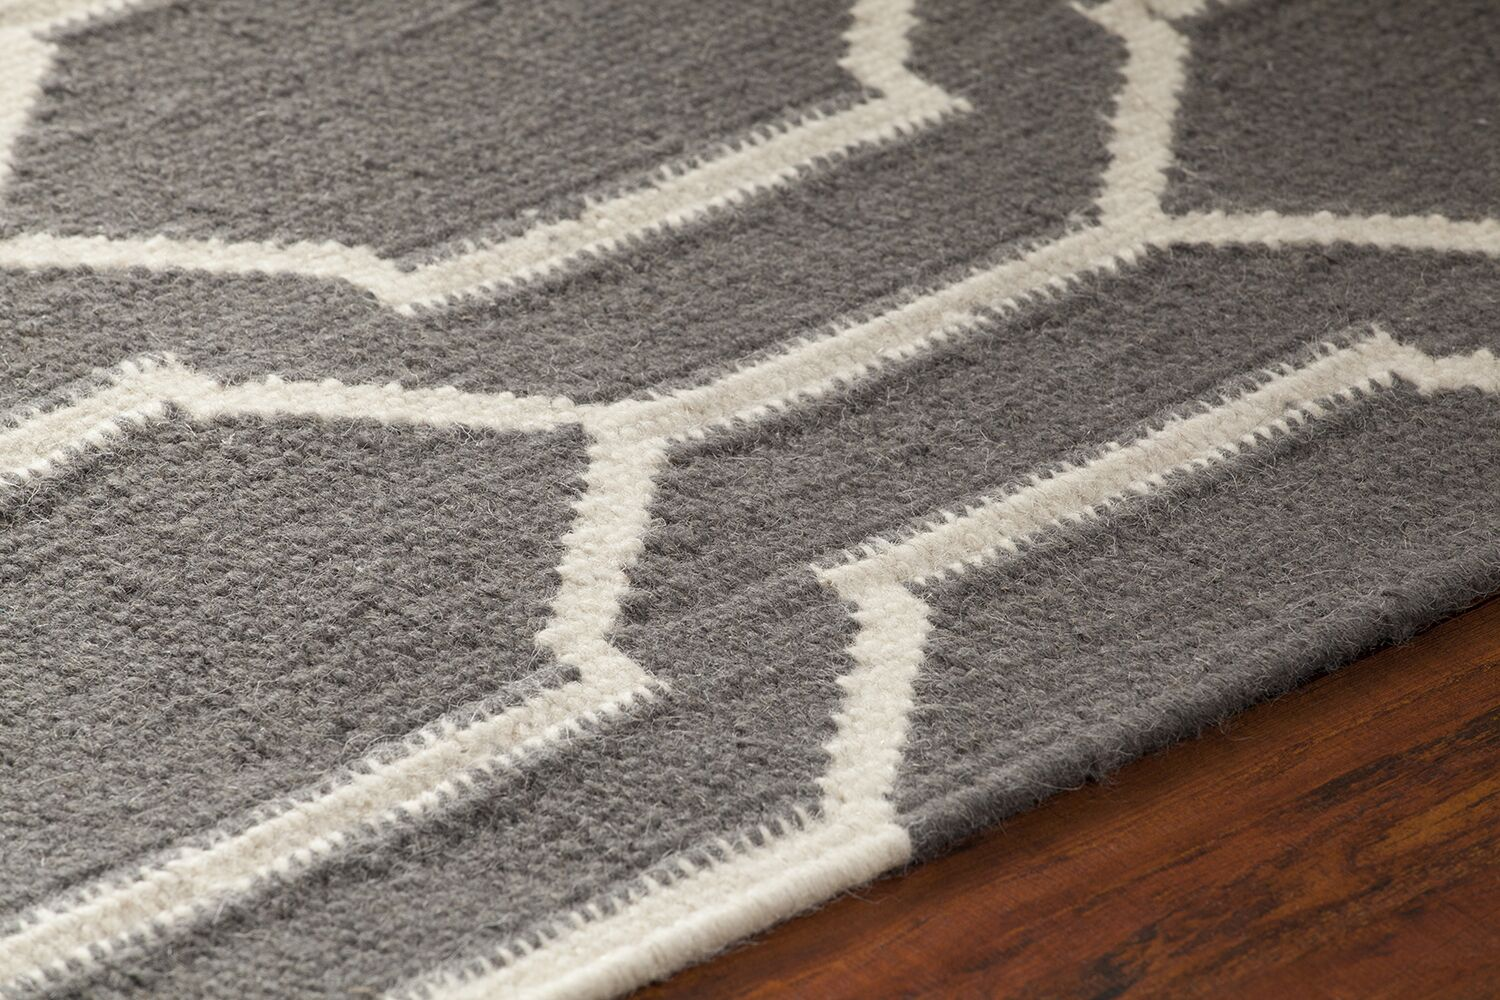 Centeno Patterned Gray/White Area Rug Rug Size: 5' x 7'6